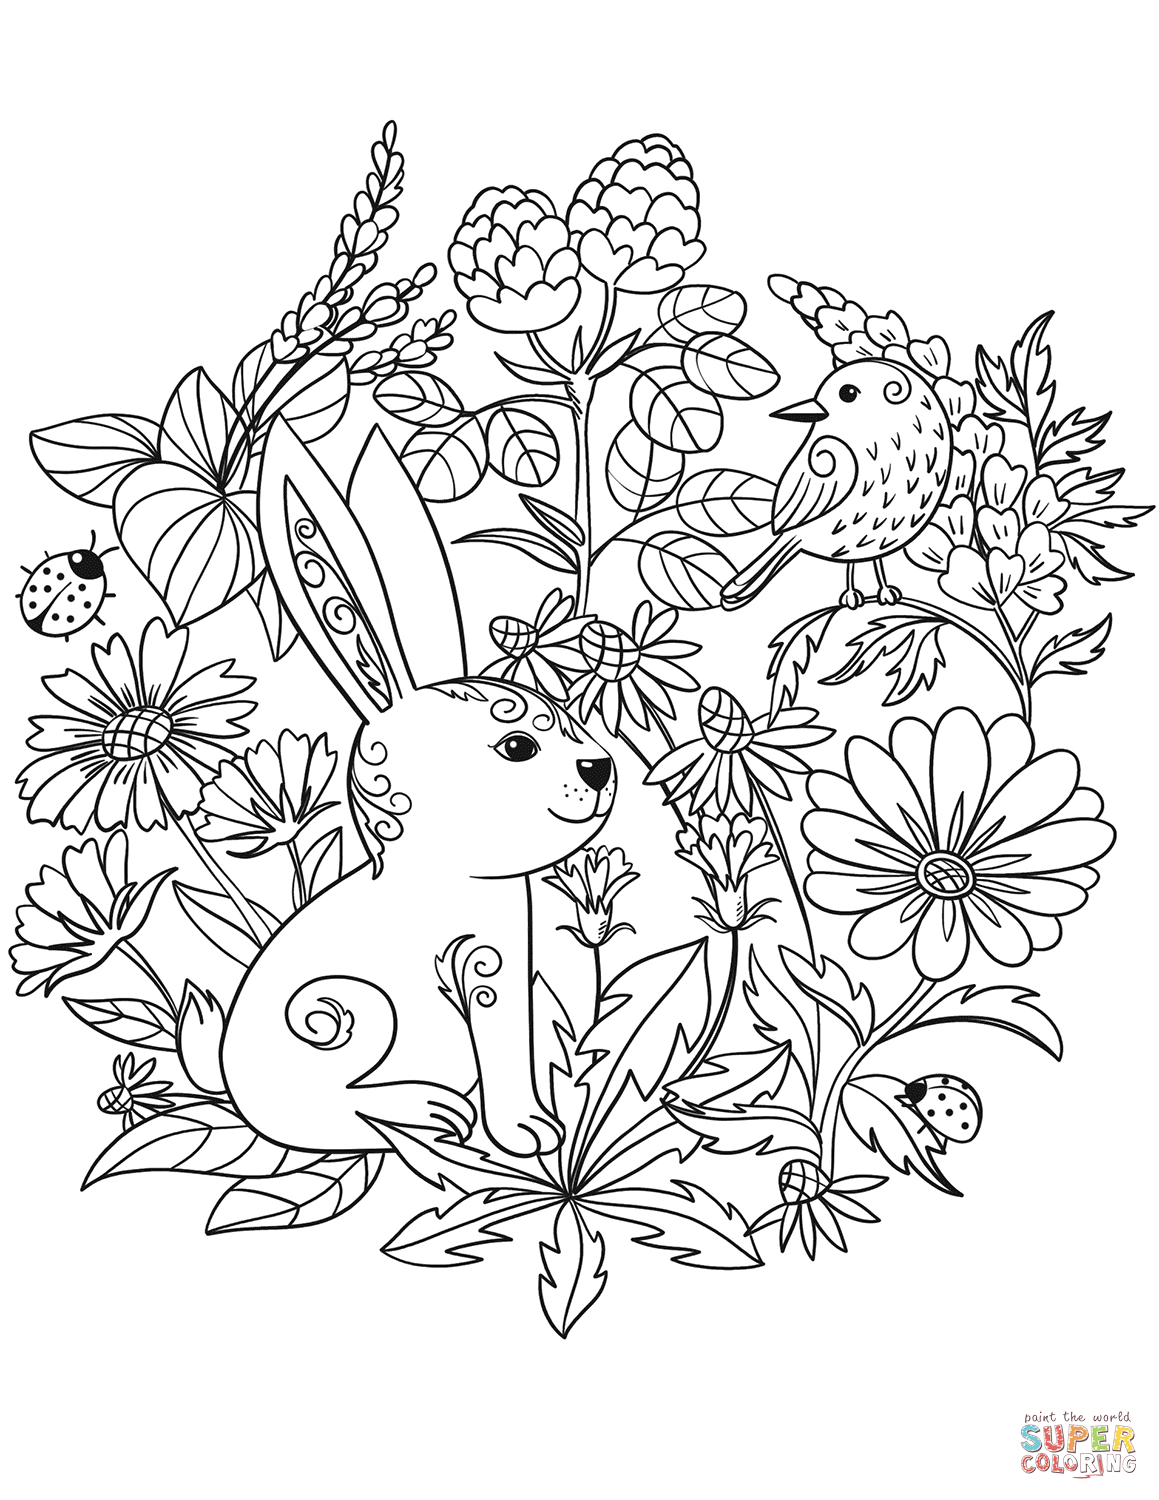 Rabbit And Bird Coloring Page Free Printable Coloring Pages